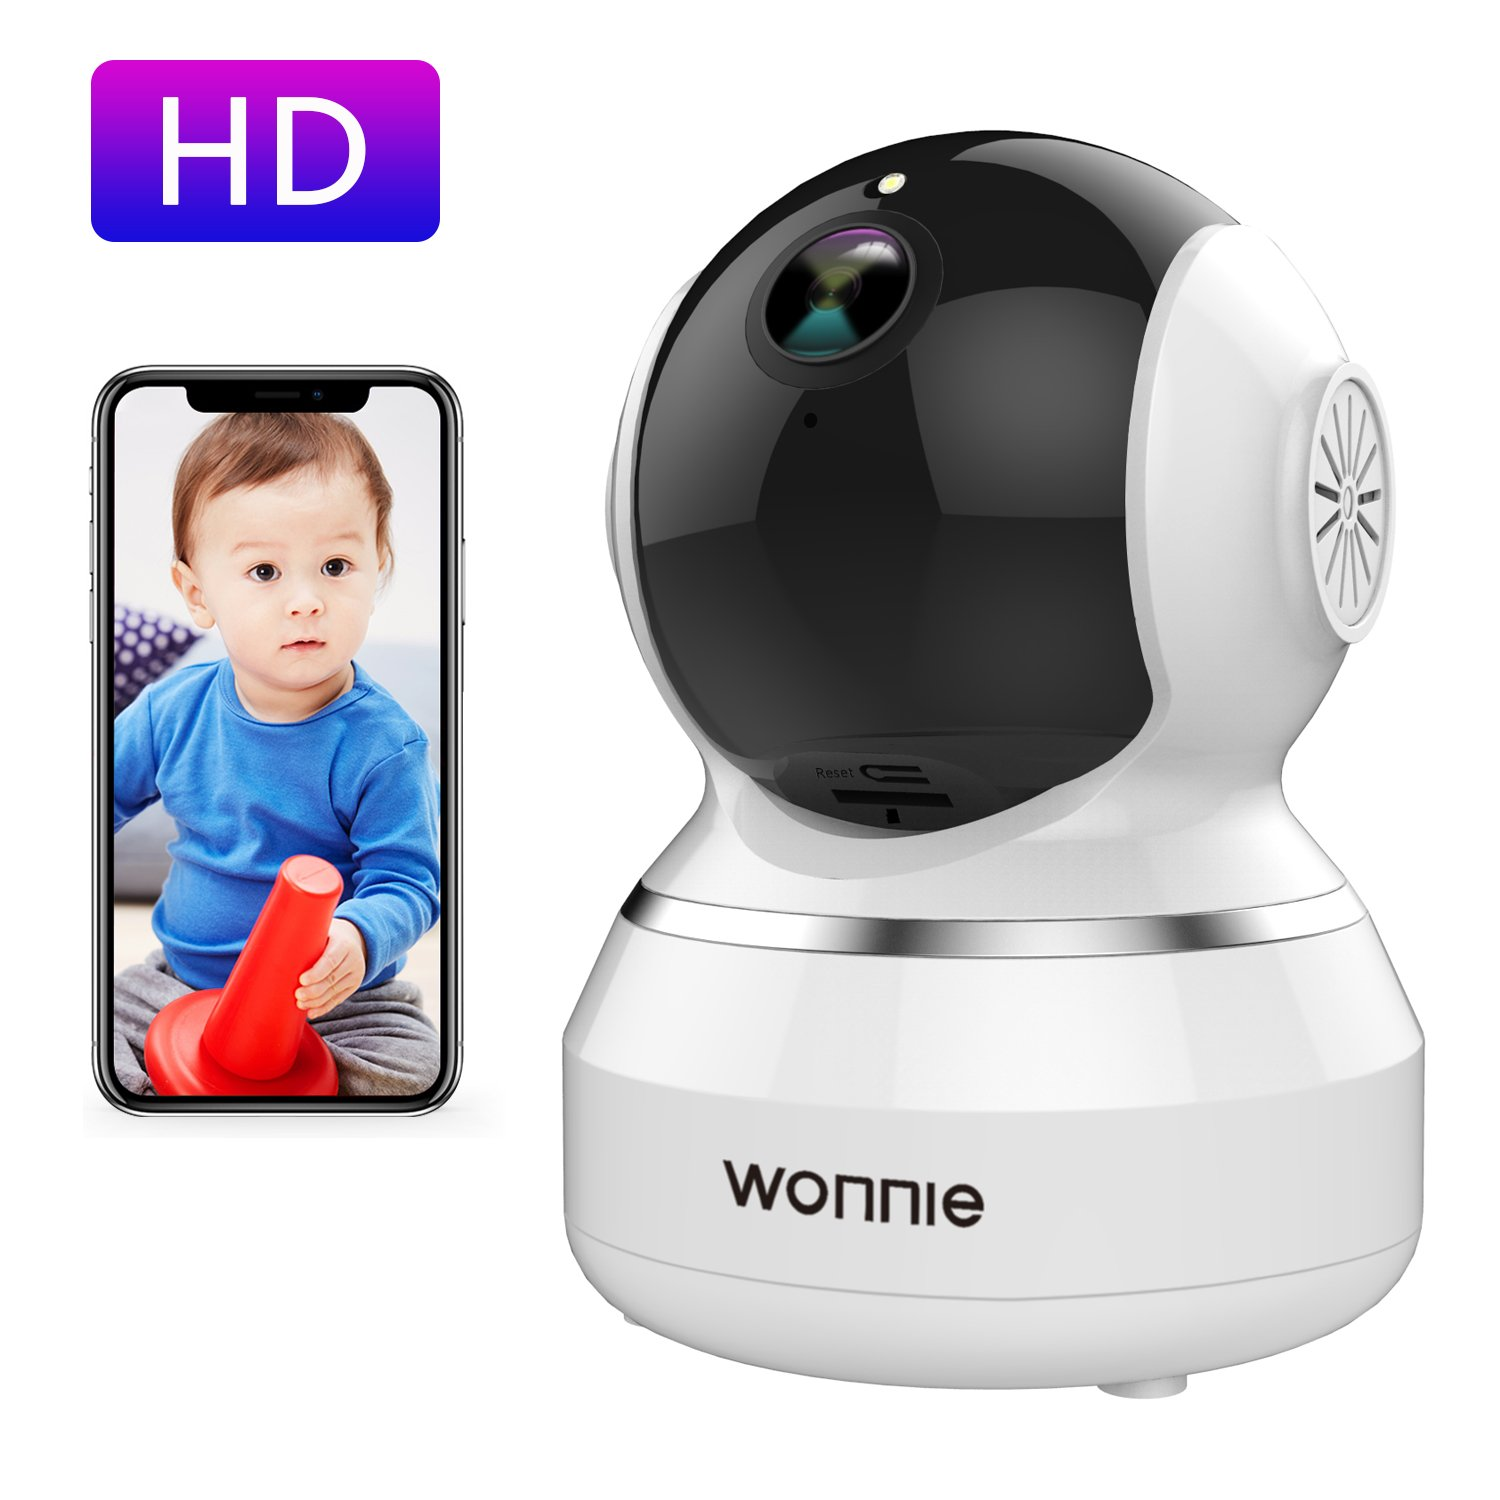 WONNIE Wireless Camera, 1080P HD Security Monitor 2.4G WiFi IP Camera Motion Detection Night Vision for Baby/Elder/Pet, Two-Way Audio by WONNIE